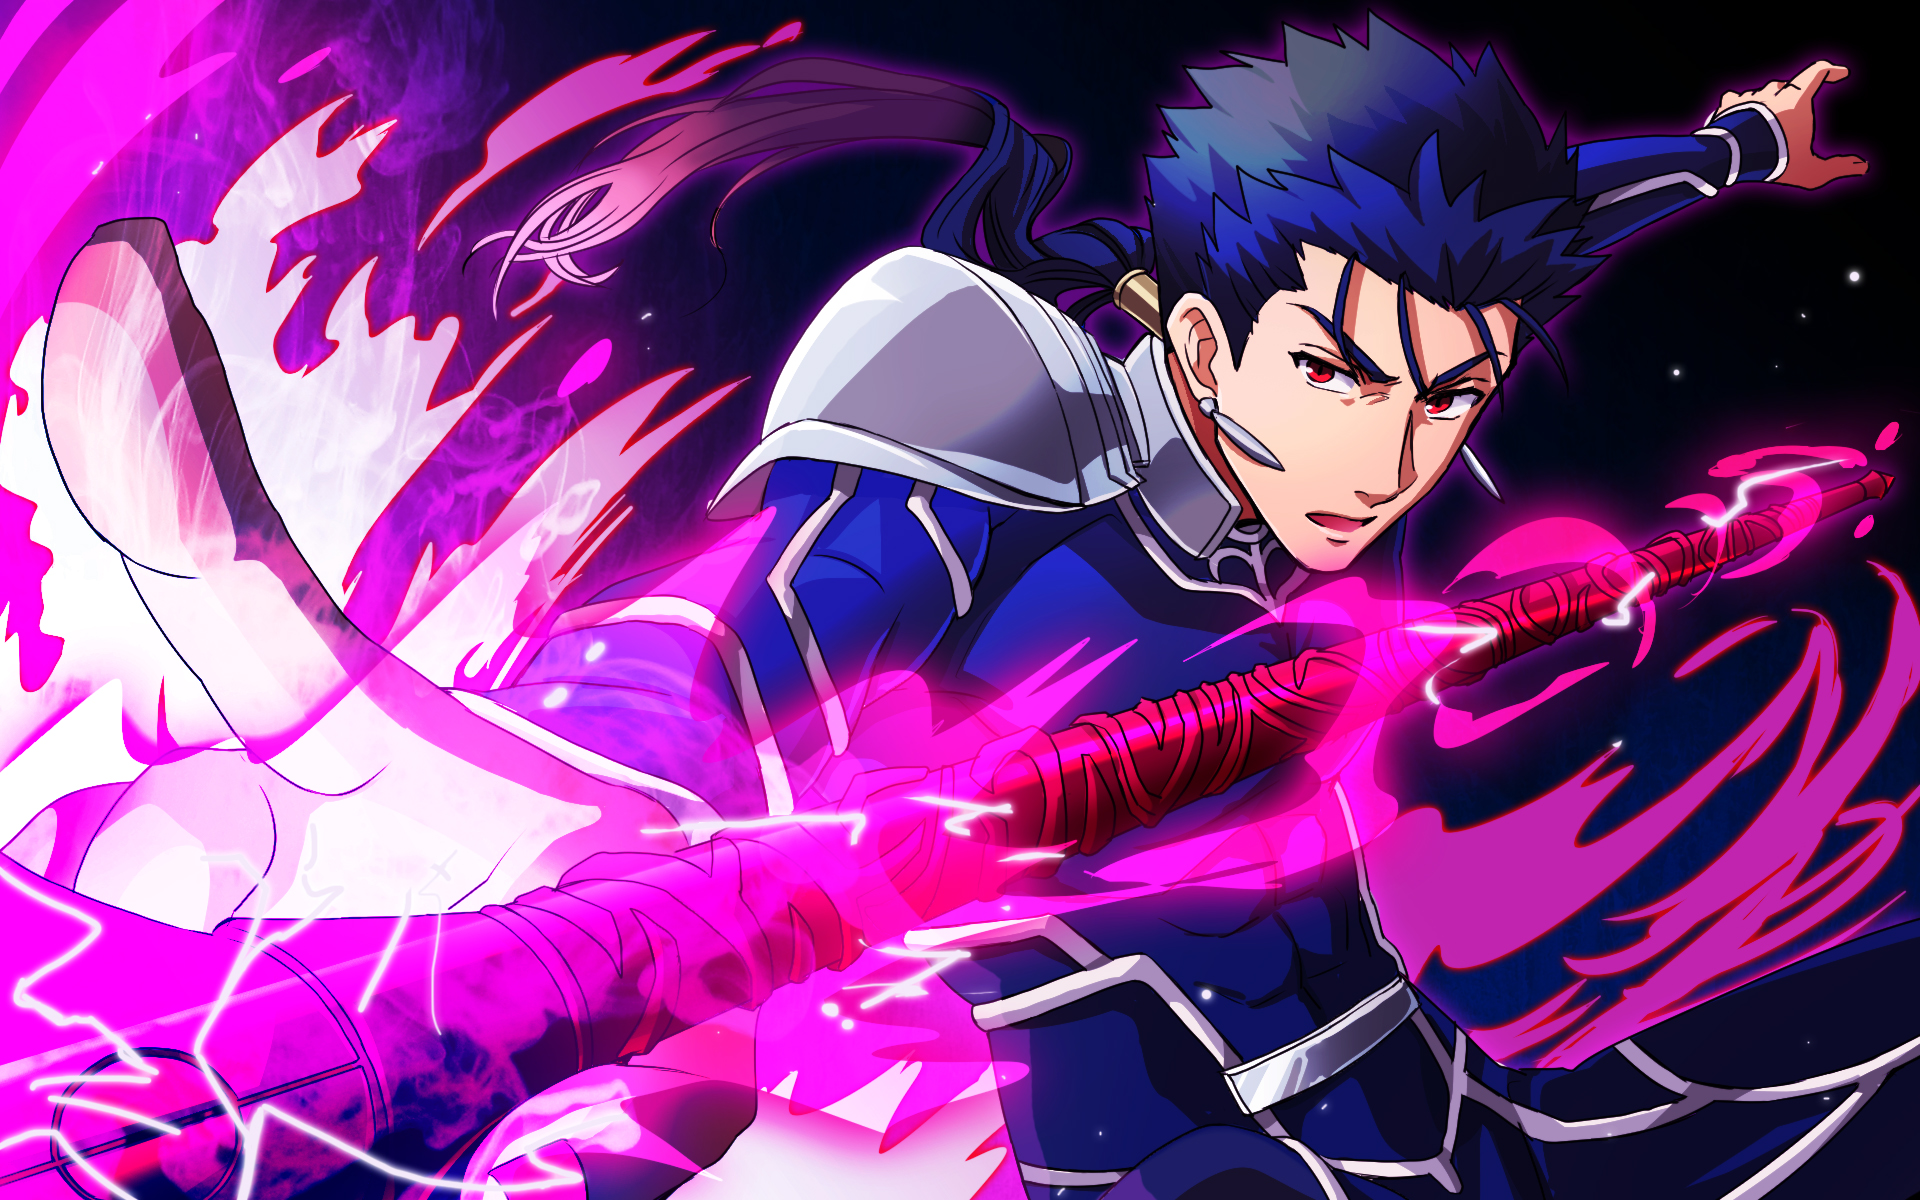 Lancer hd wallpaper background image 1920x1200 id 673529 wallpaper abyss - Fate stay night wallpaper ...